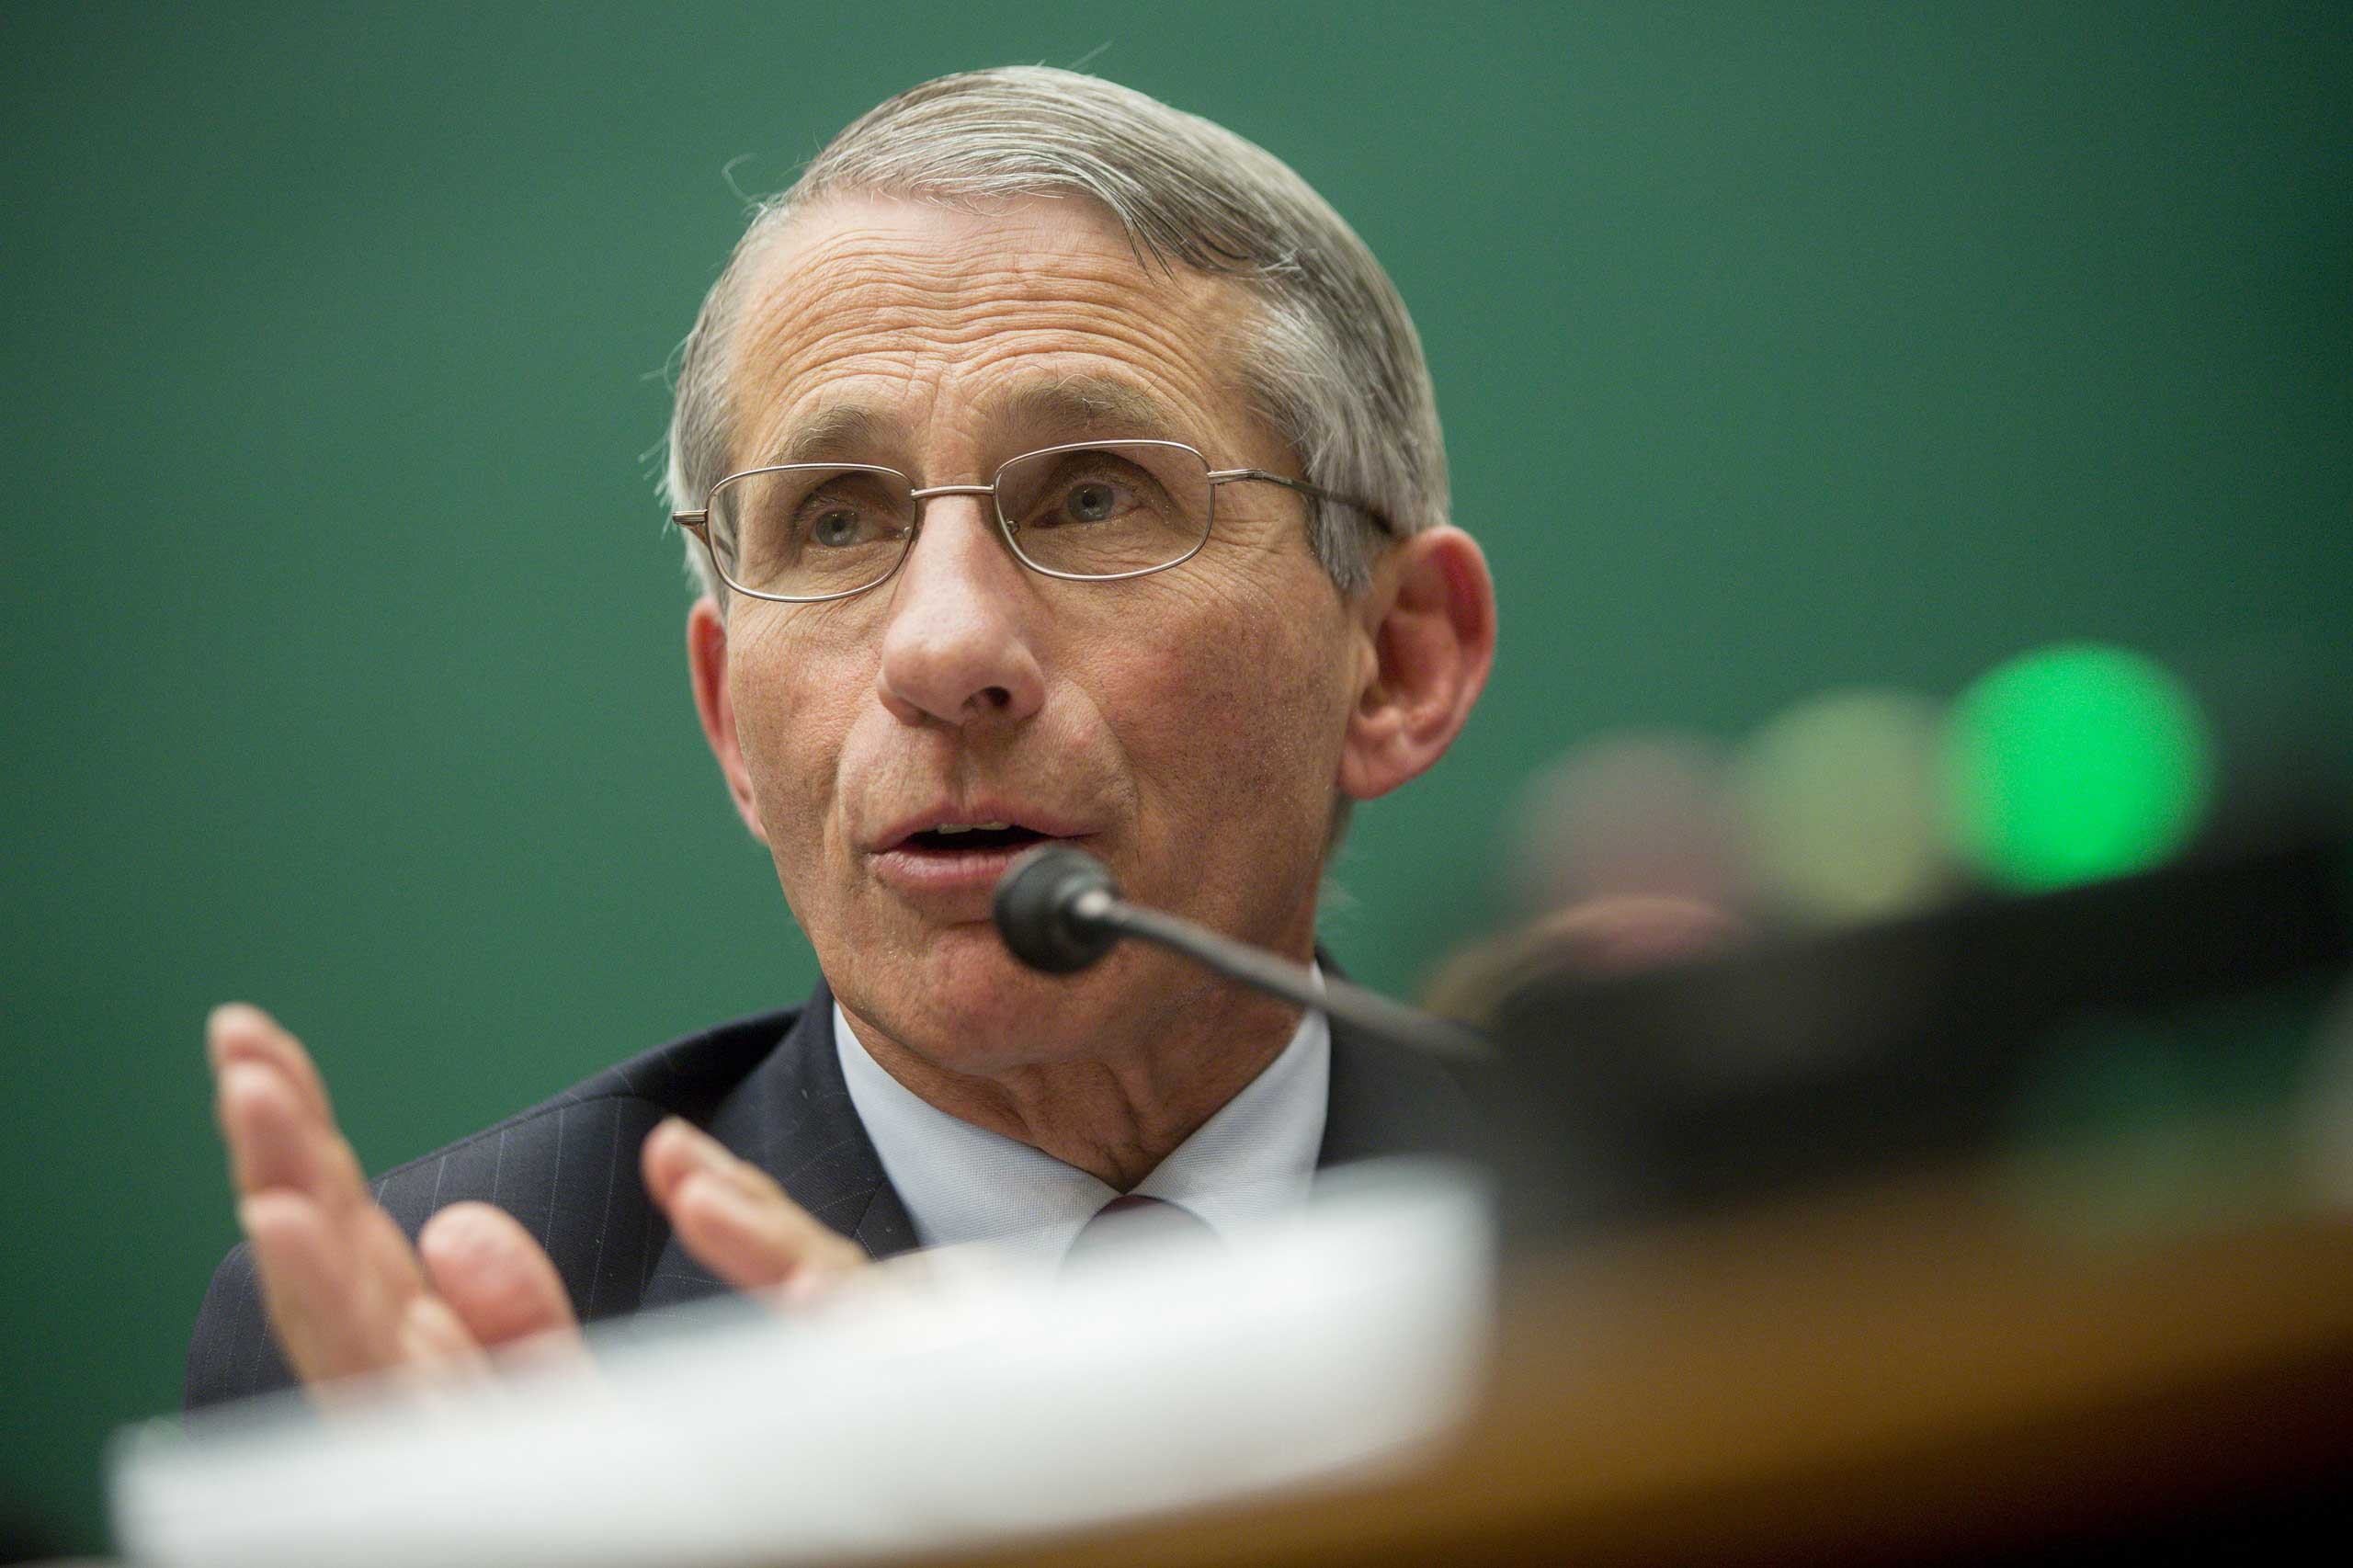 Anthony Fauci, director of the National Institute of Allergy and Infectious Diseases, speaks during a House Energy and Commerce Committee subcommittee hearing on the U.S. public health response to the Ebola outbreak in Washington, D.C., Oct. 2014.